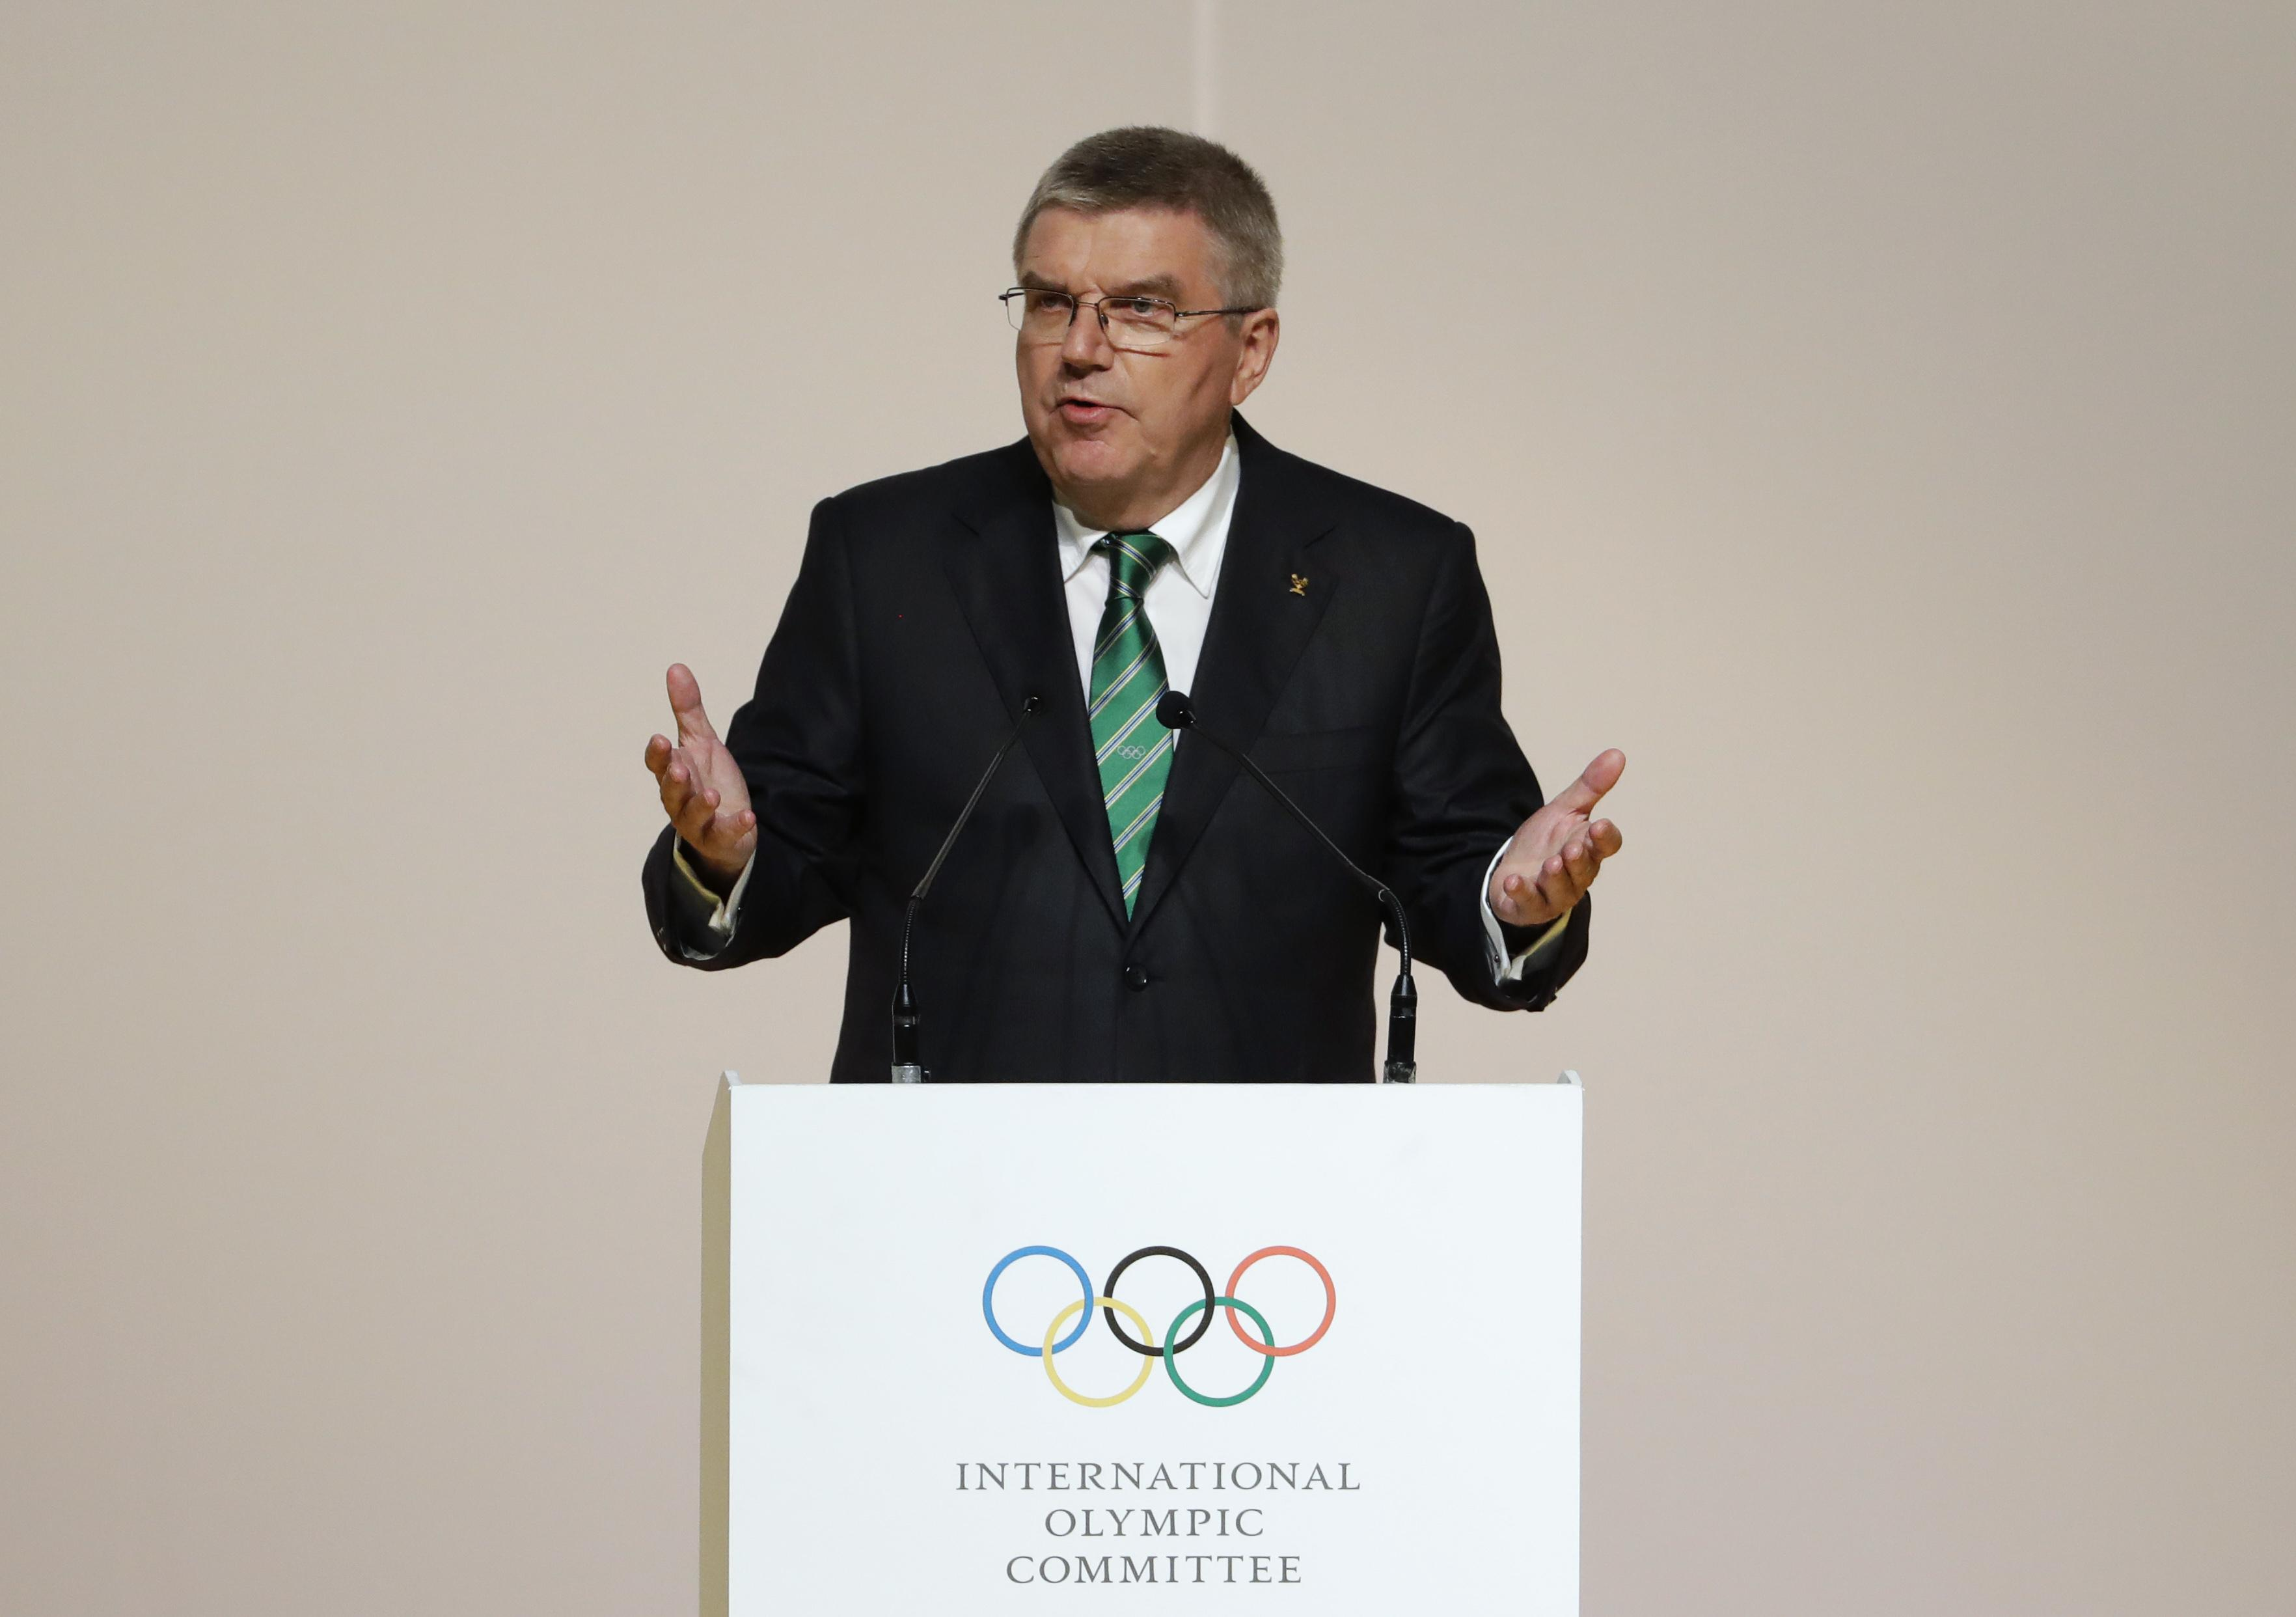 IOC deprived Russia of the gold medal won at the Beijing Olympics